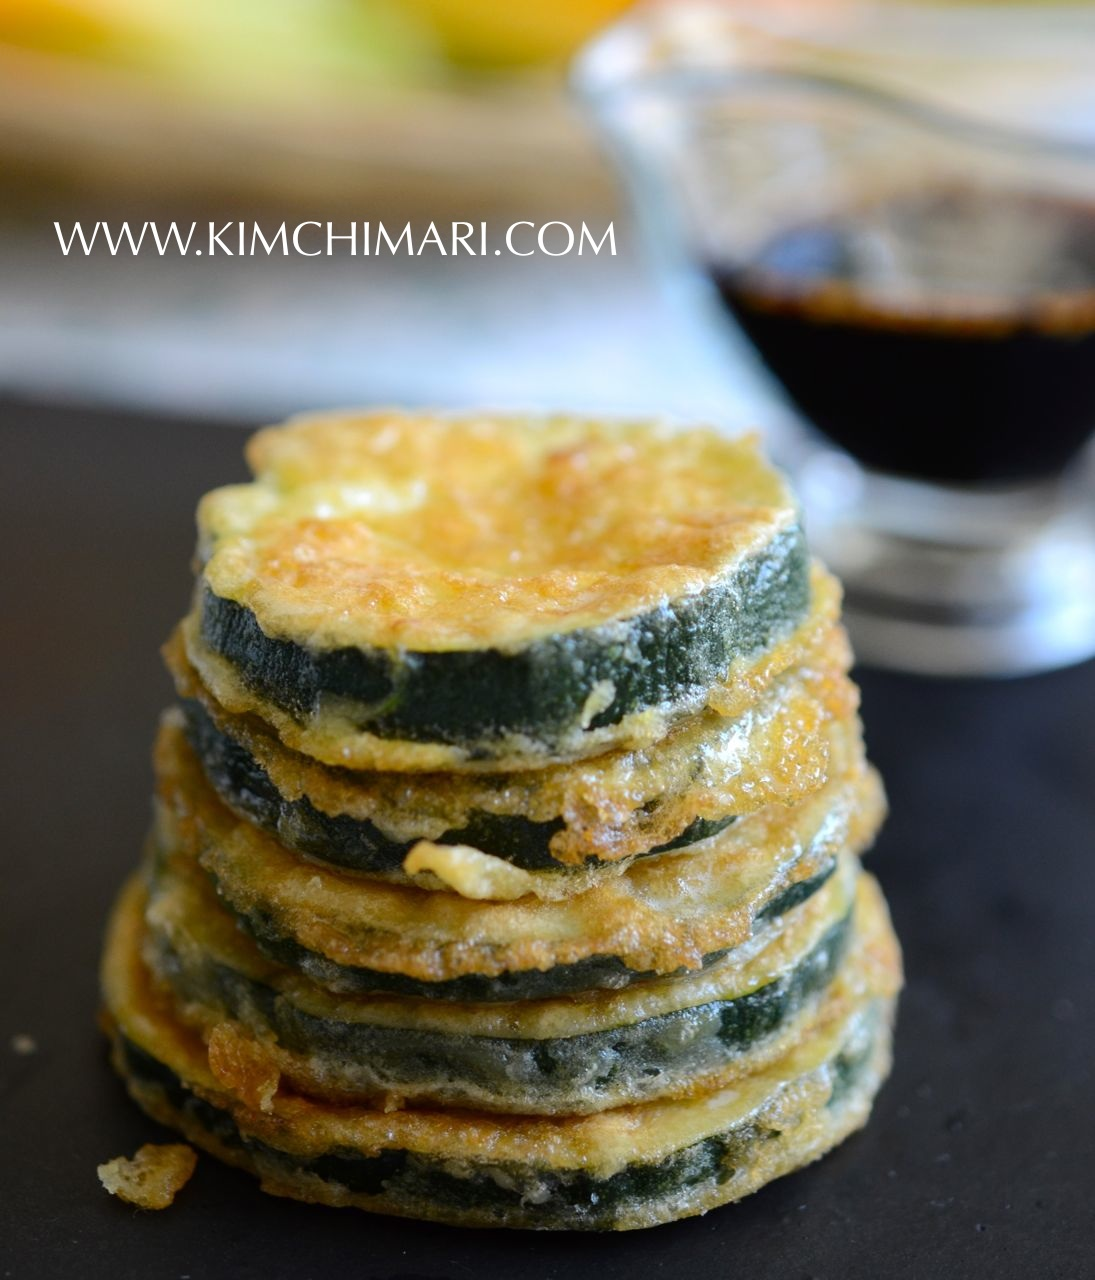 And you know how to fry zucchini with egg